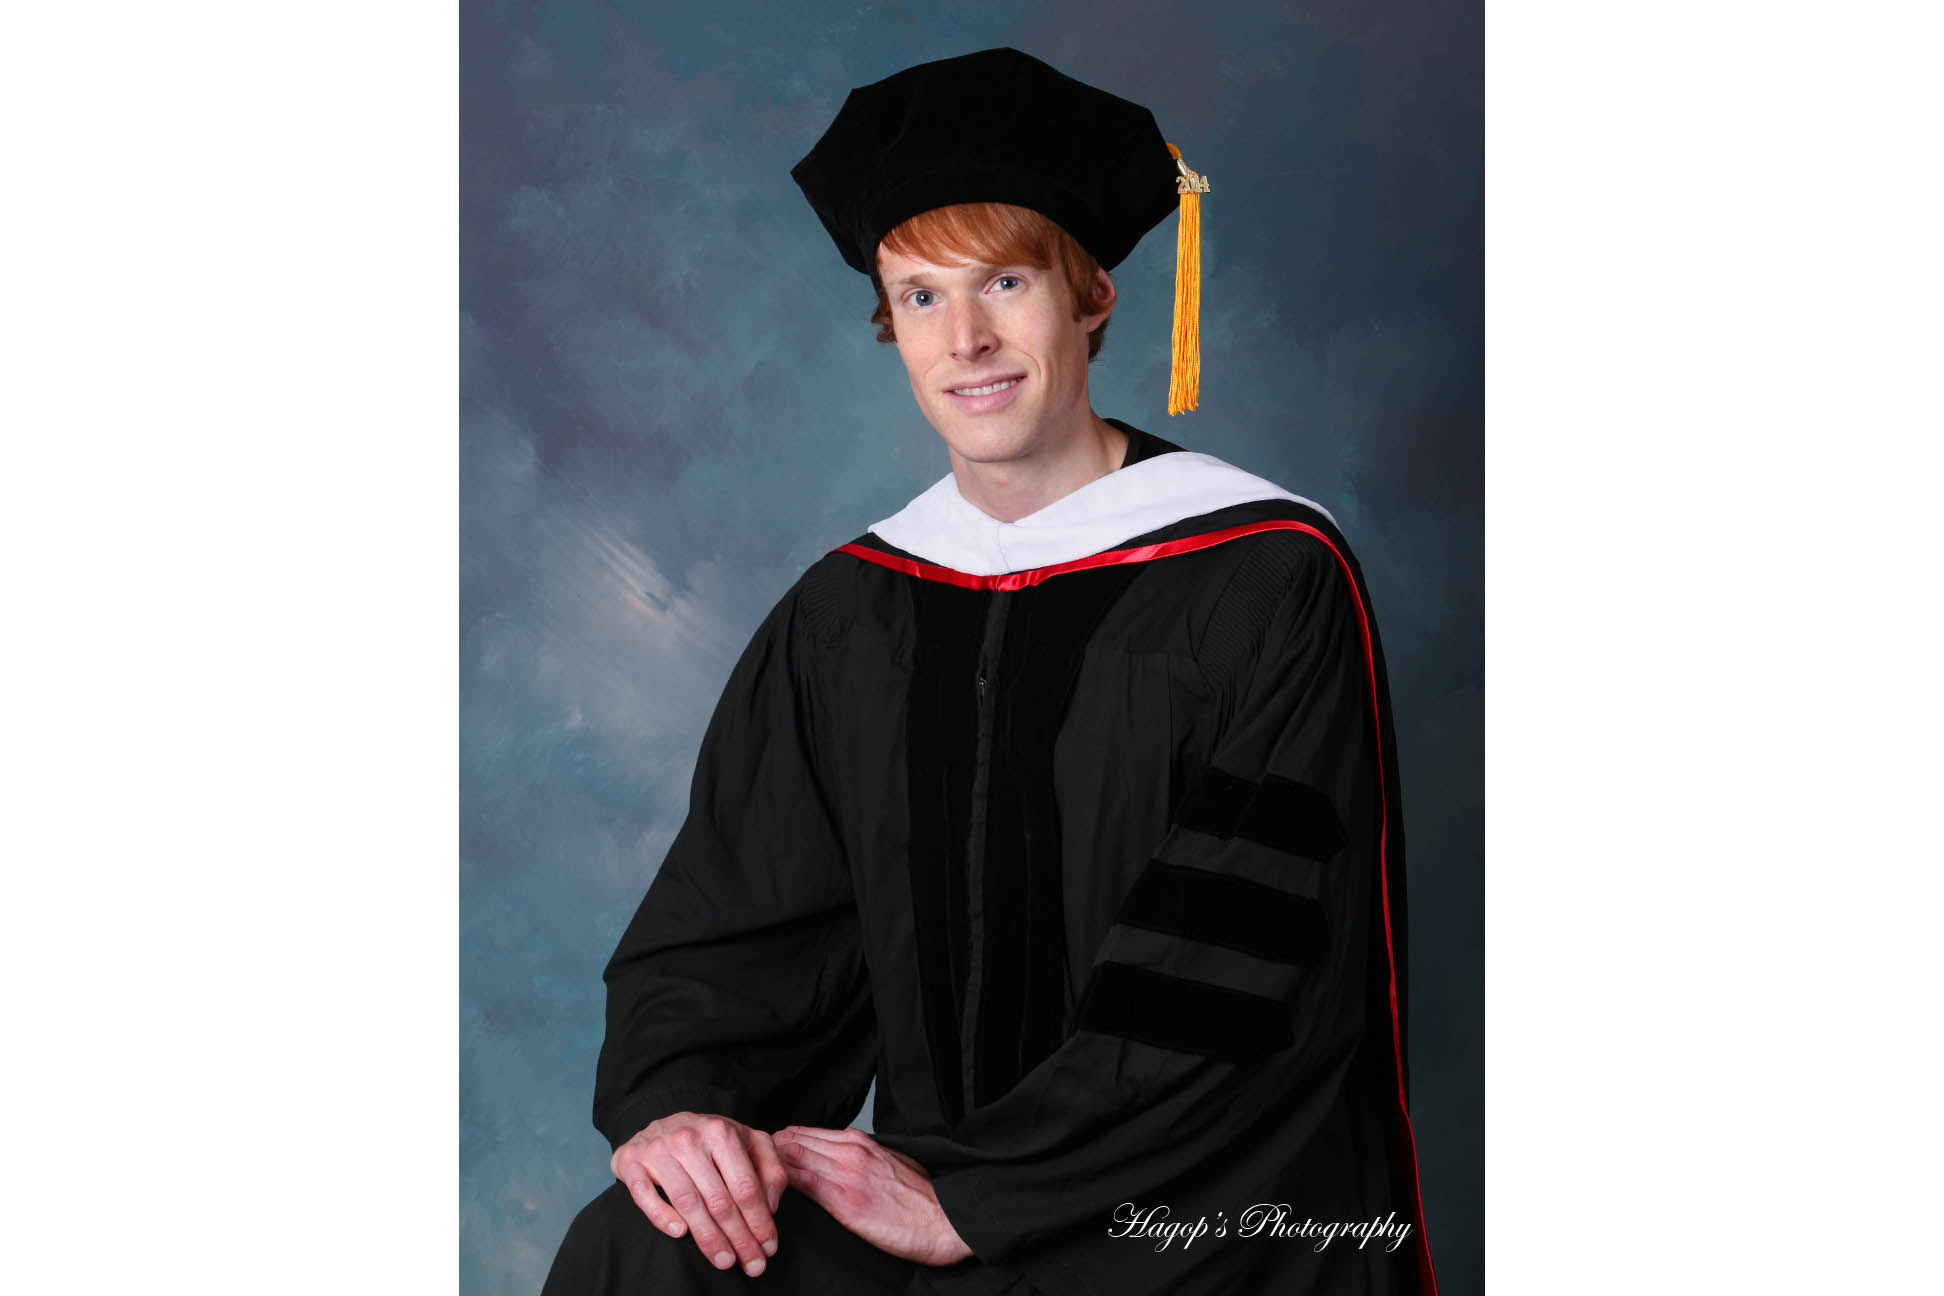 stanford male graduate portrait with cap and gown